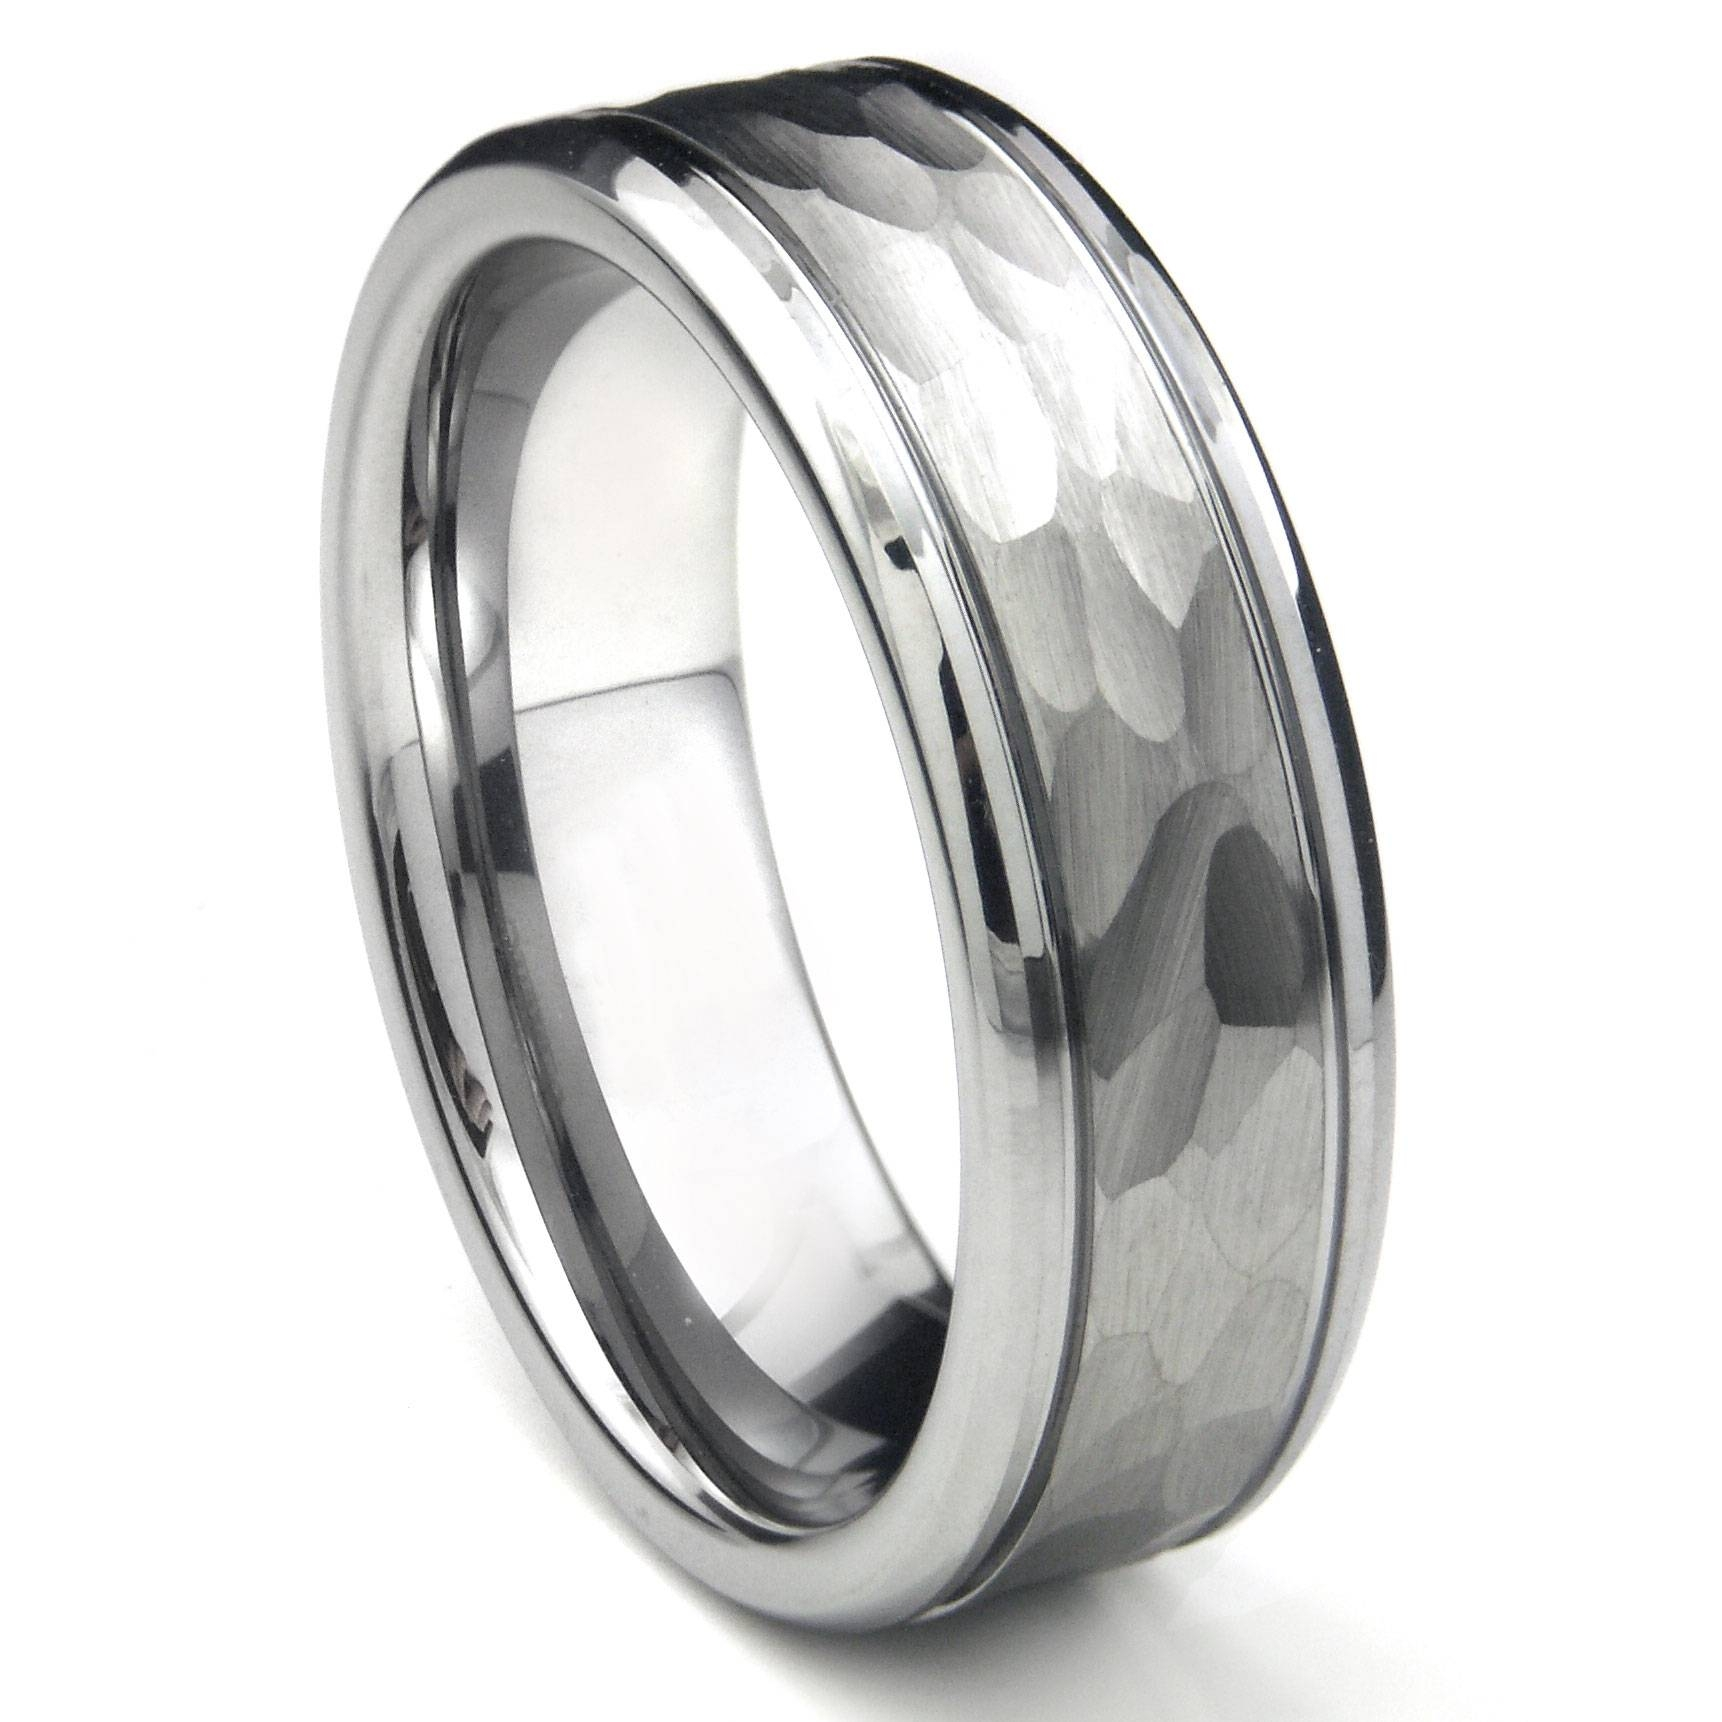 Tungsten Carbide Hammer Finish Wedding Band Ring /w Grooves Within Most Recently Released Mes Wedding Bands (View 11 of 15)